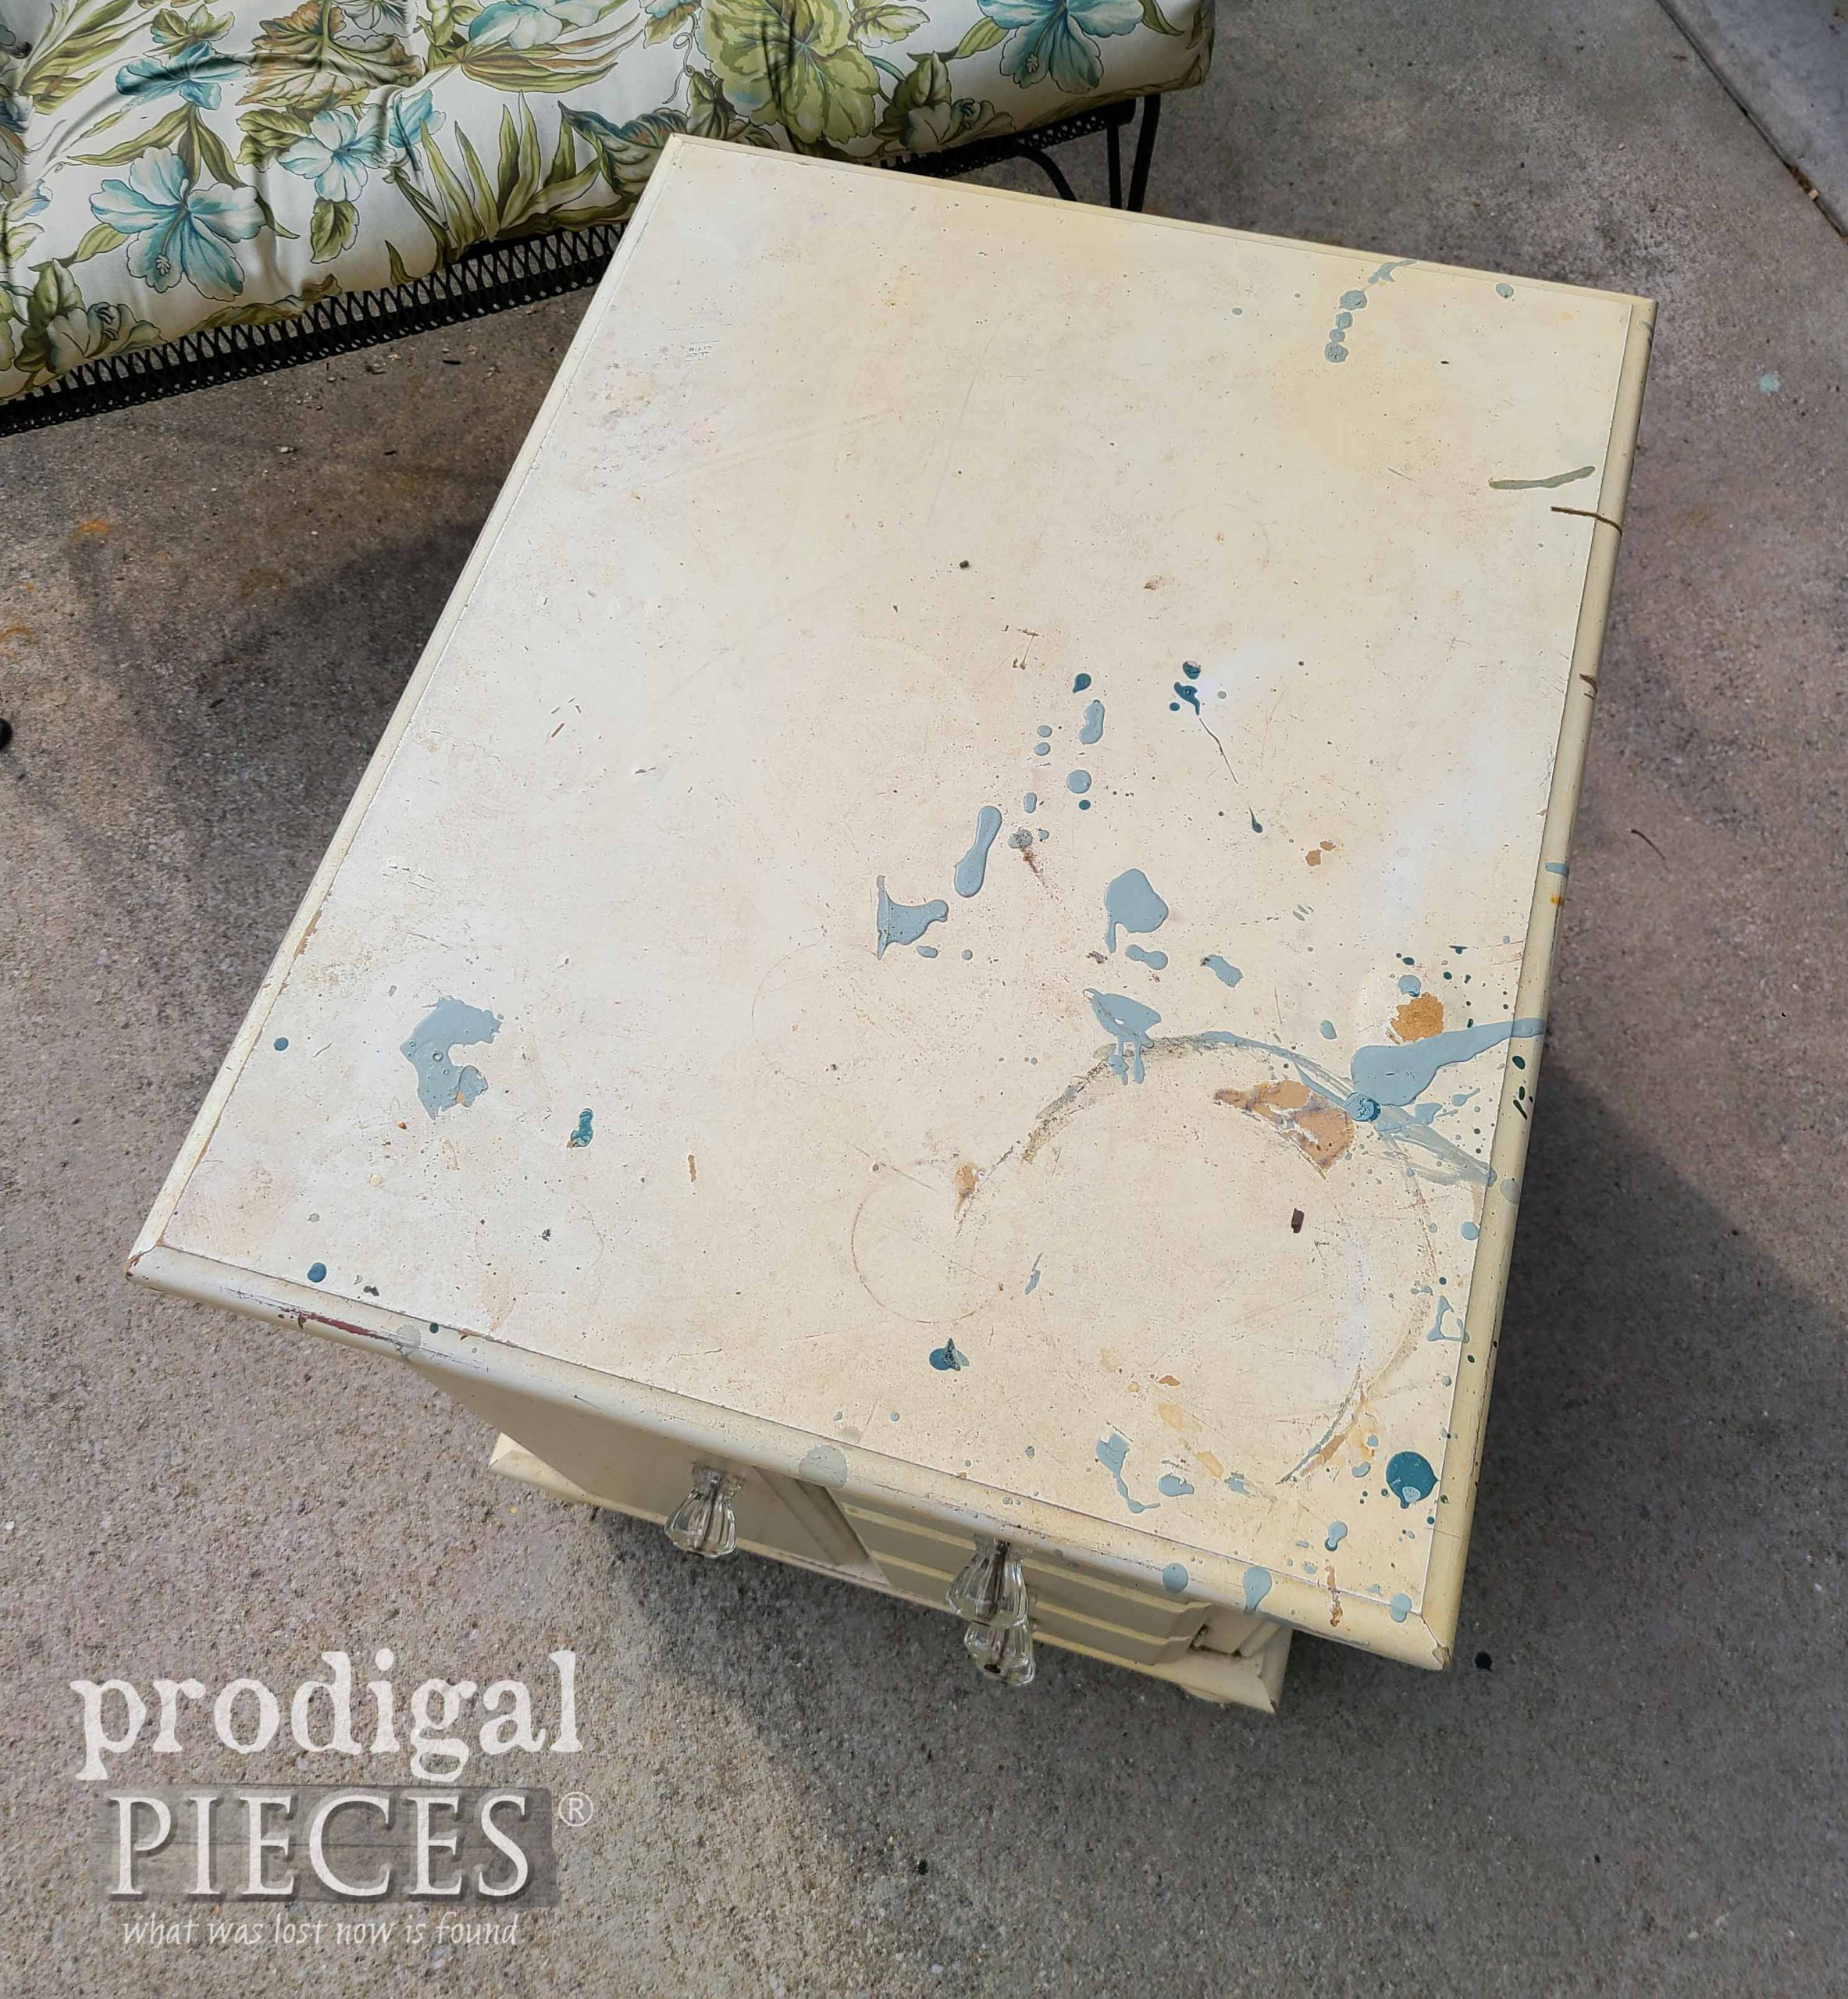 Top of Vintage Riverside Cabinet Side Table with Damage   prodigalpieces.com #prodigalpieces